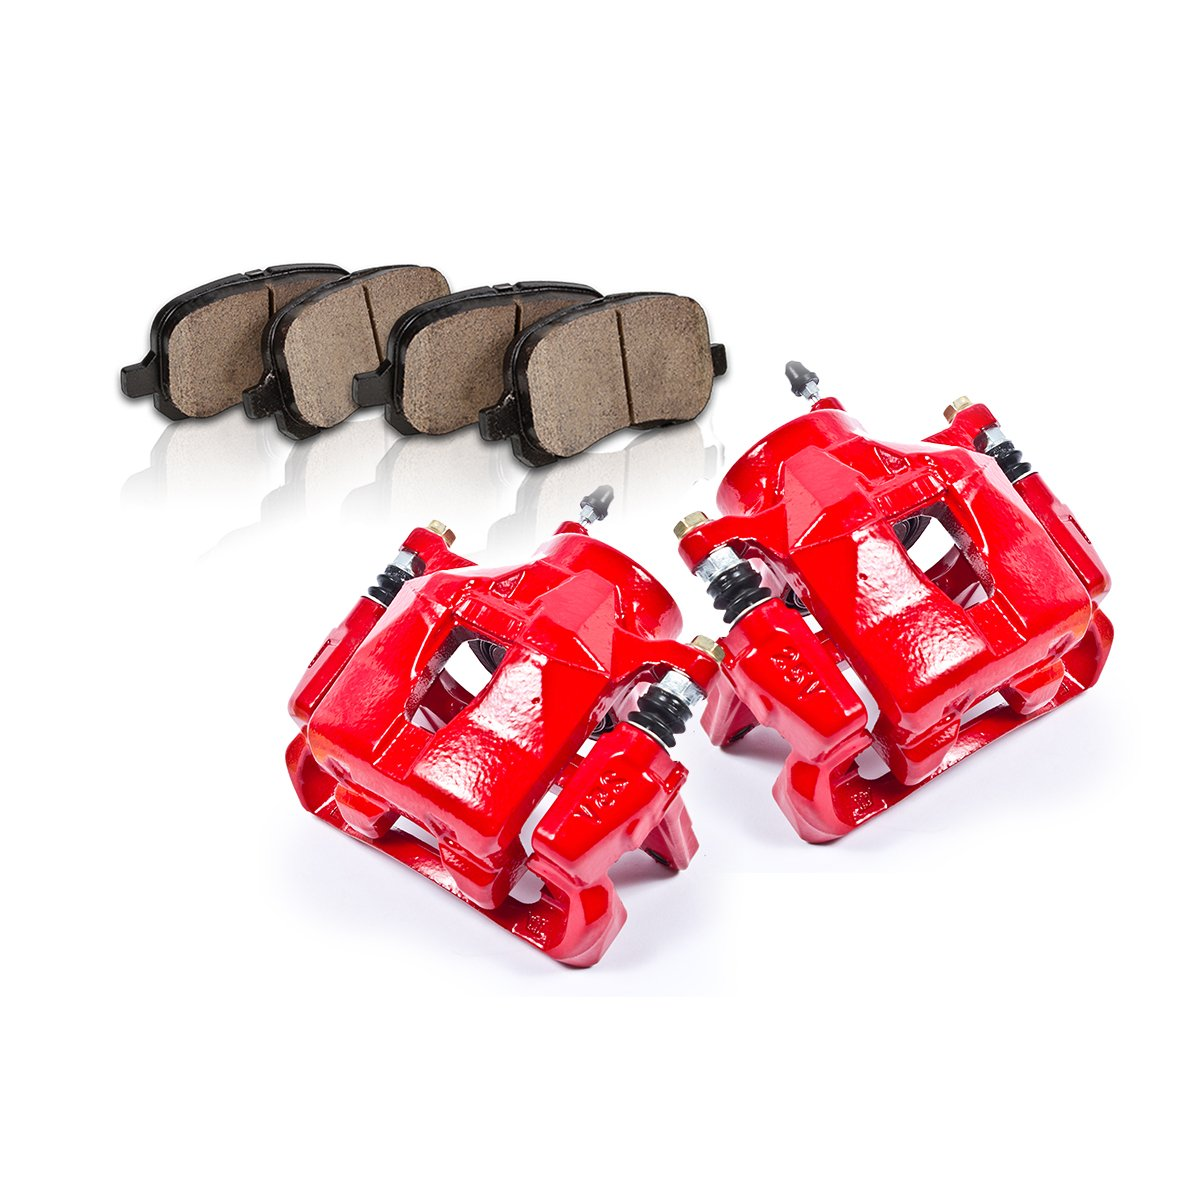 Callahan [ 2 ] FRONT Performance Grade Semi-Loaded Red Caliper Set + Ceramic Brake Pads motorcycle front and rear brake pads for yamaha fzr 400 fzr400 rrsp rr 1991 1992 brake disc pad